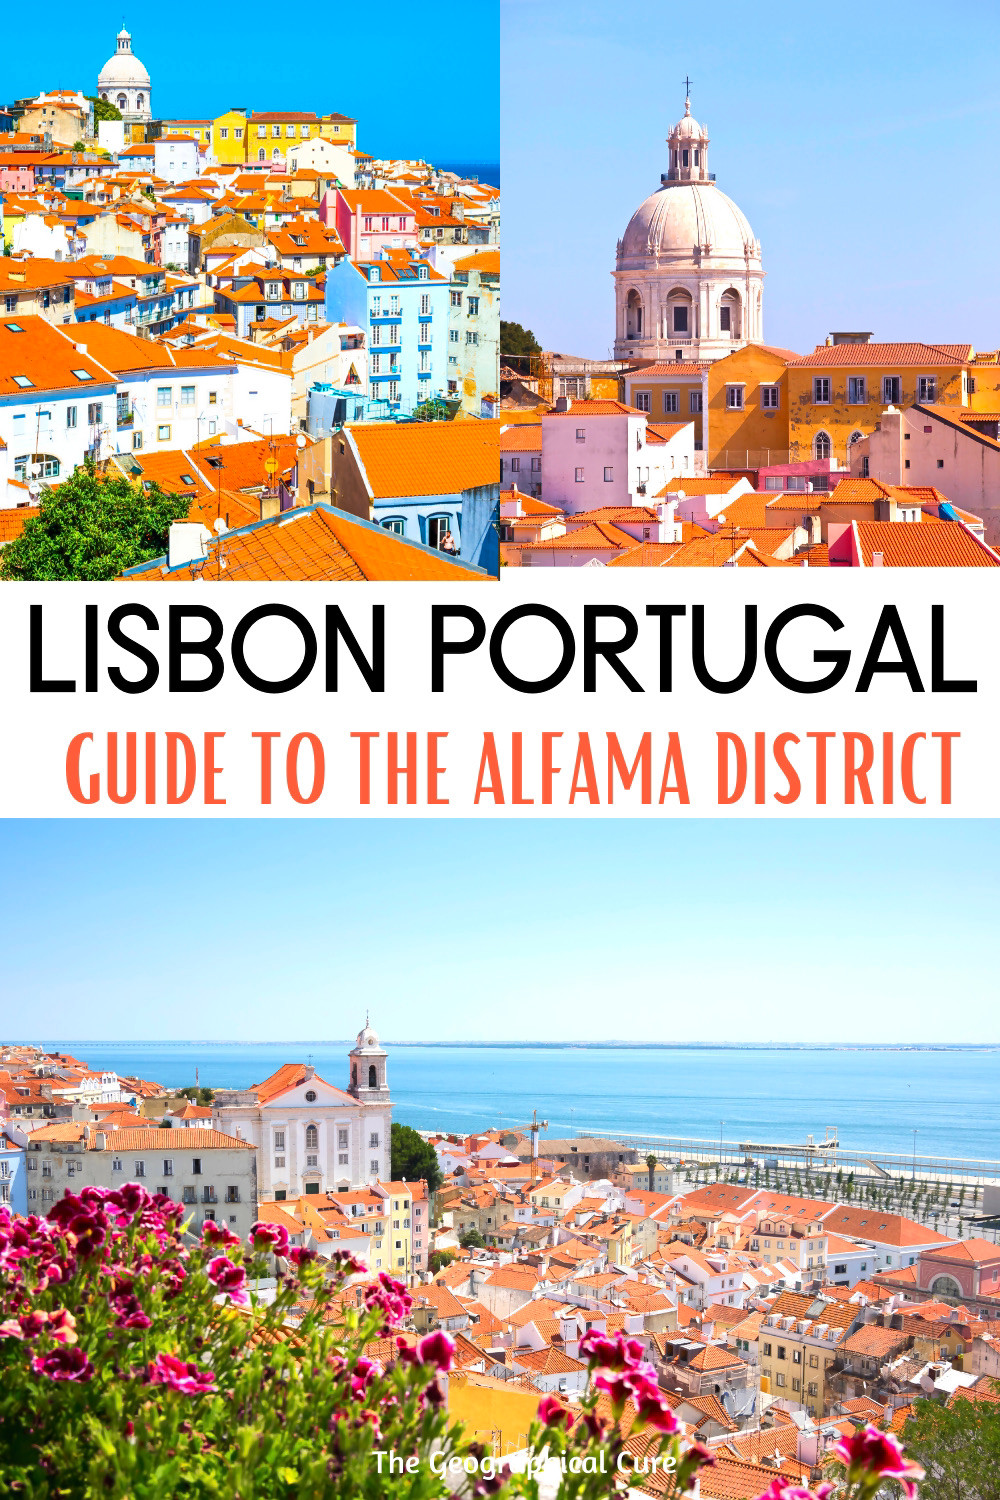 guide to the best things to do and see in Lisbon's beautiful Alfama neighborhood